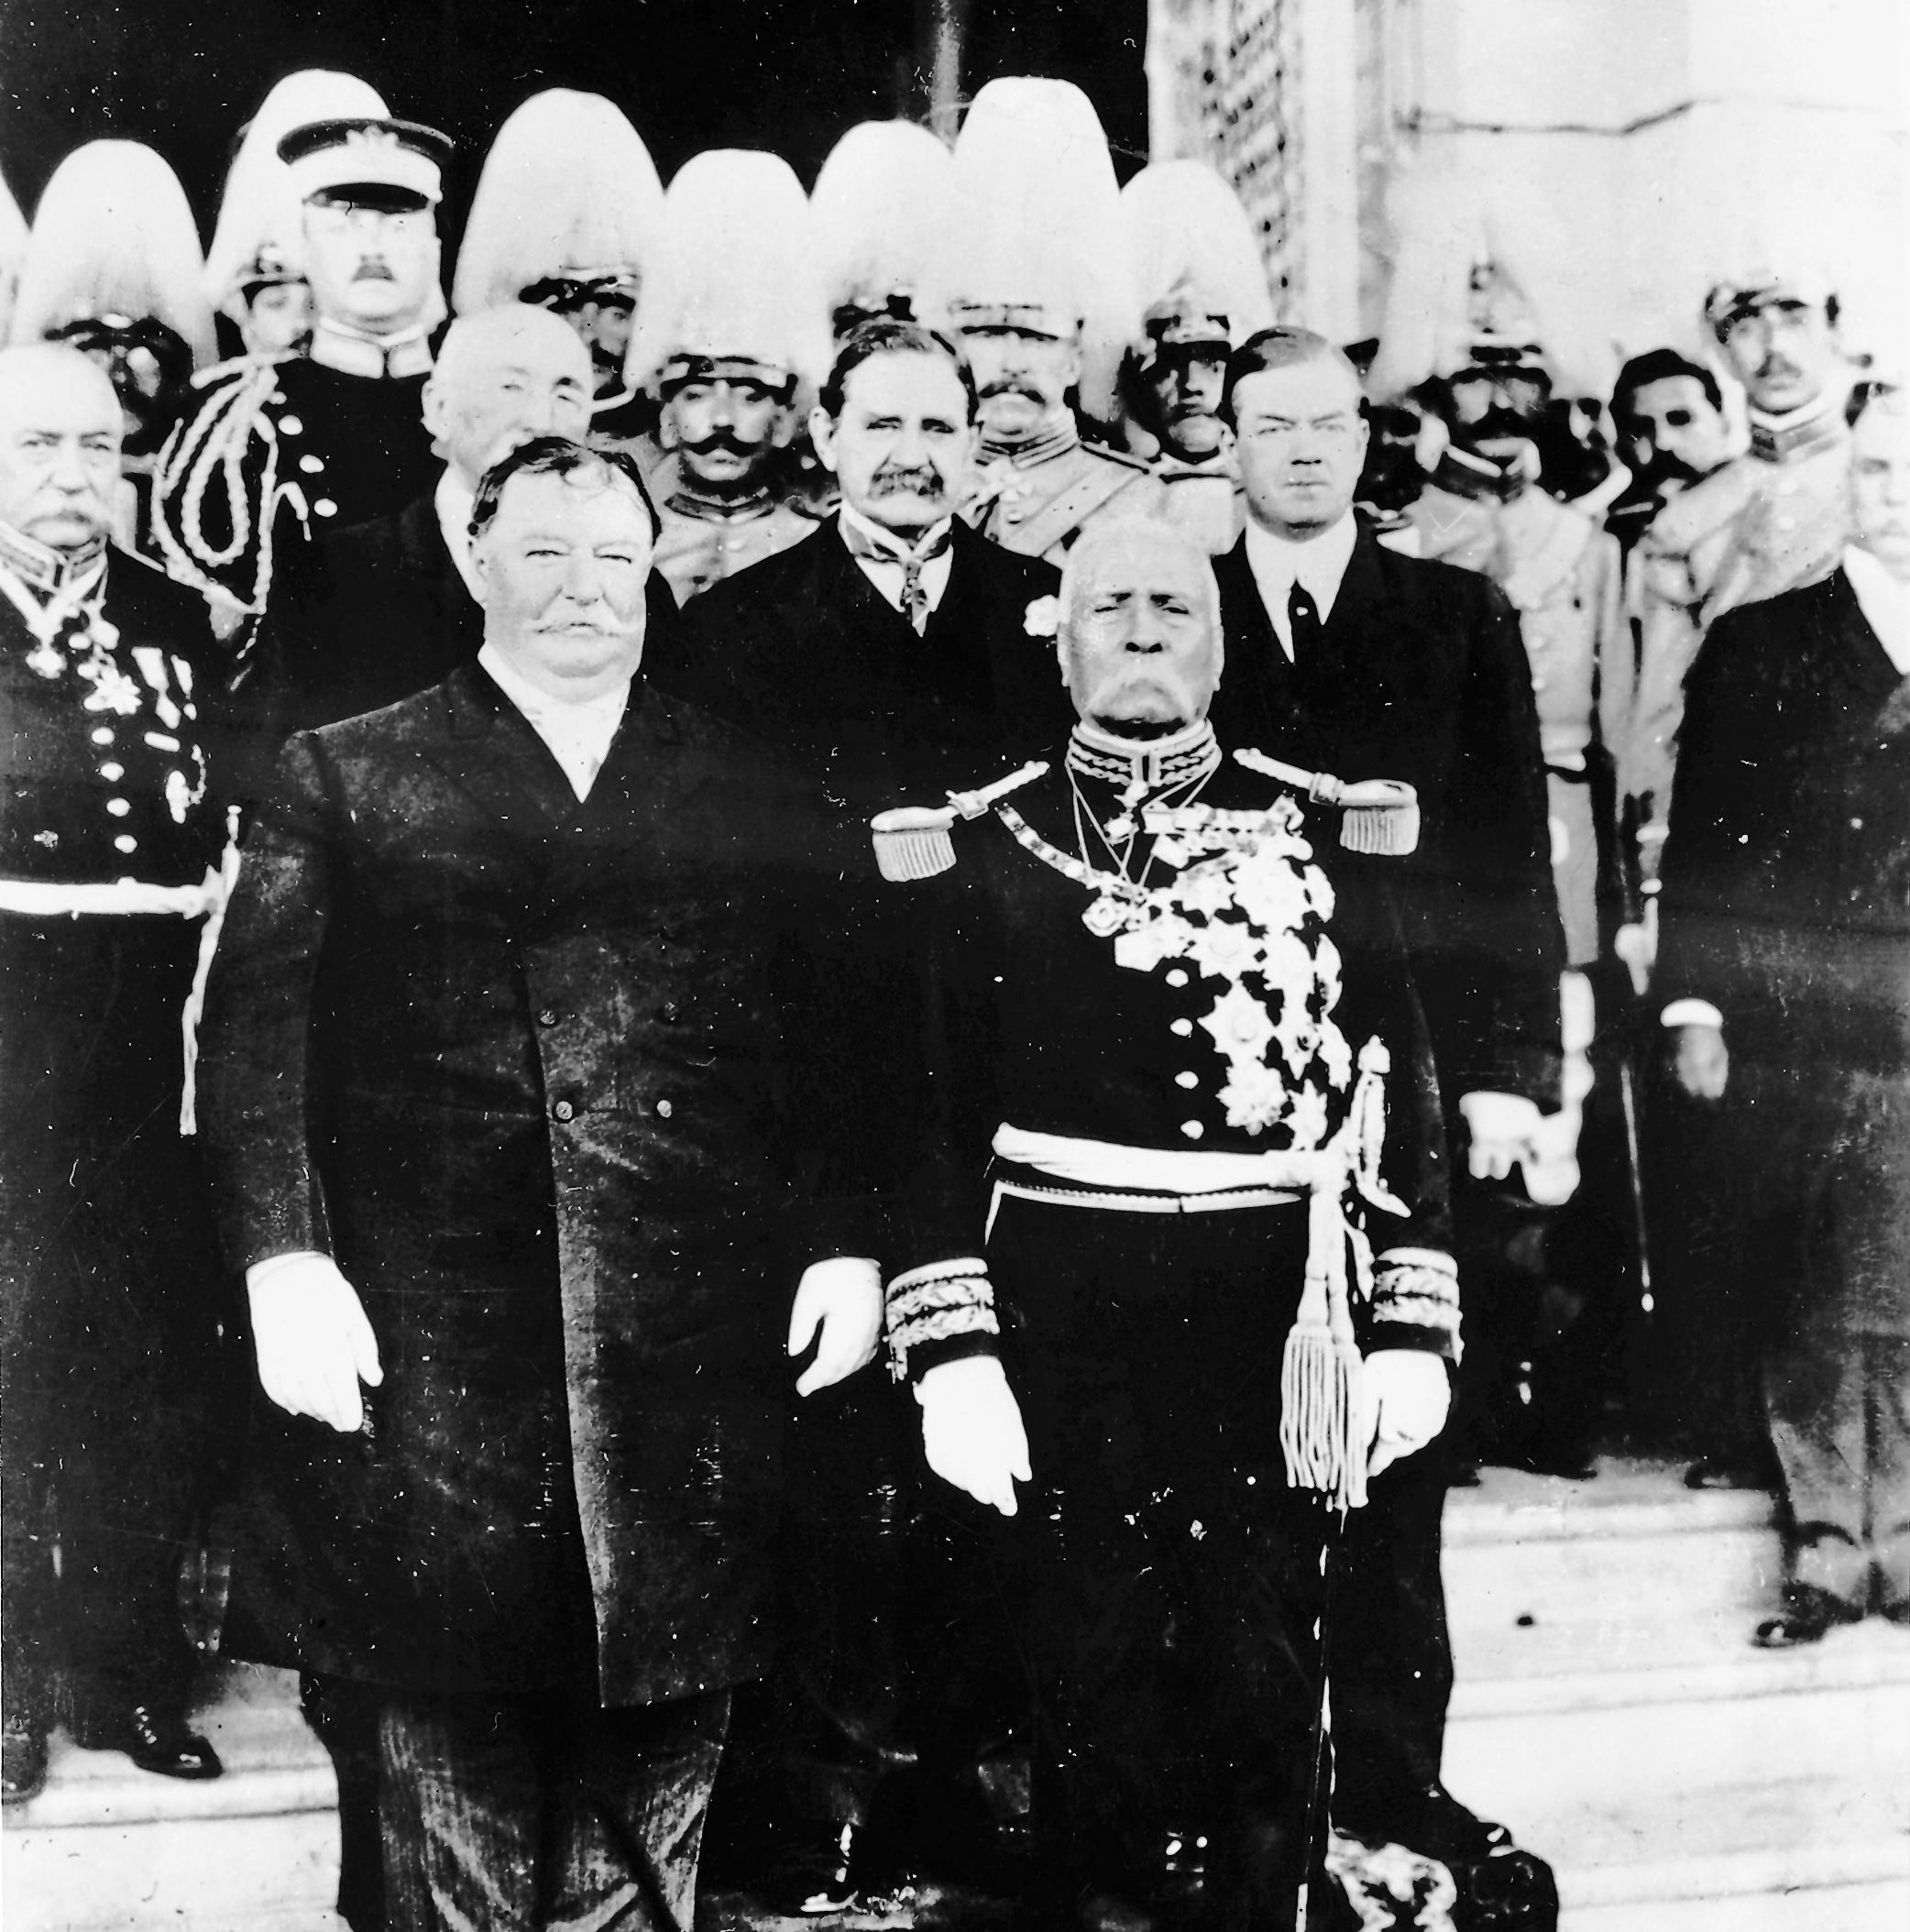 Past presidential visits: William Howard Taft in 1909